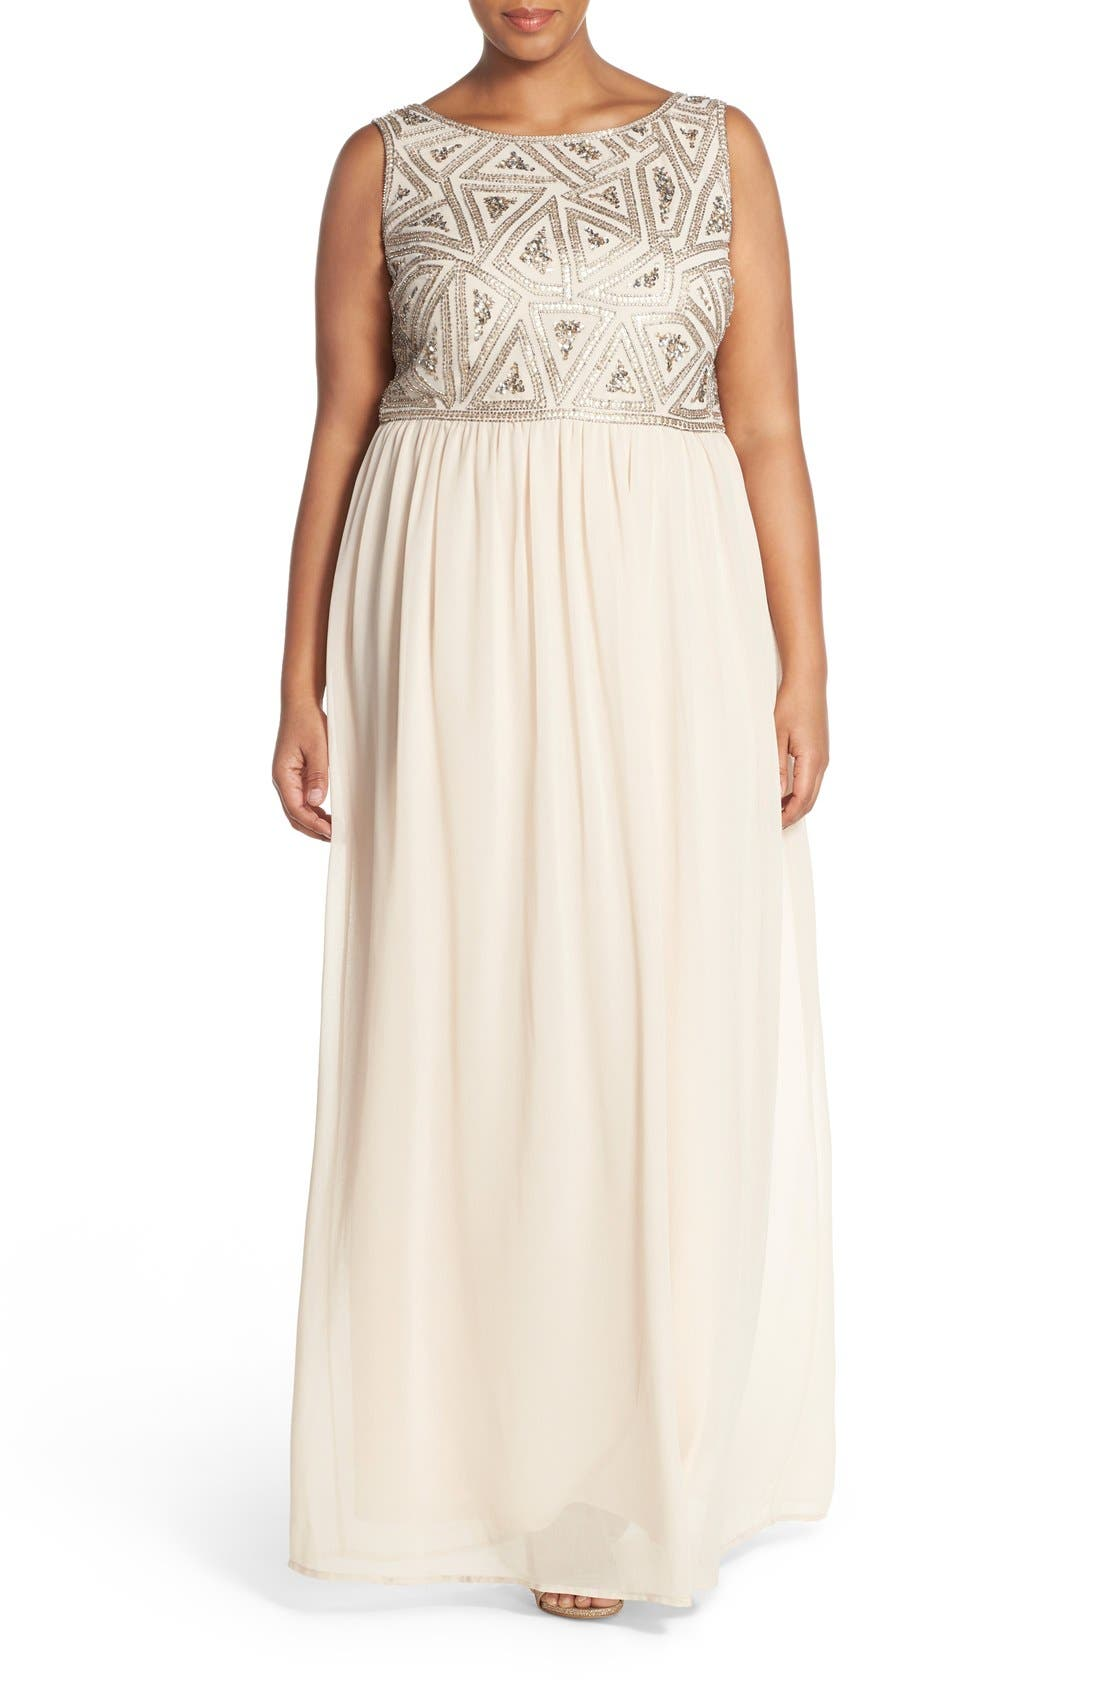 Alternate Image 1 Selected - Adrianna Papell Beaded Bodice A-Line Gown (Plus Size)